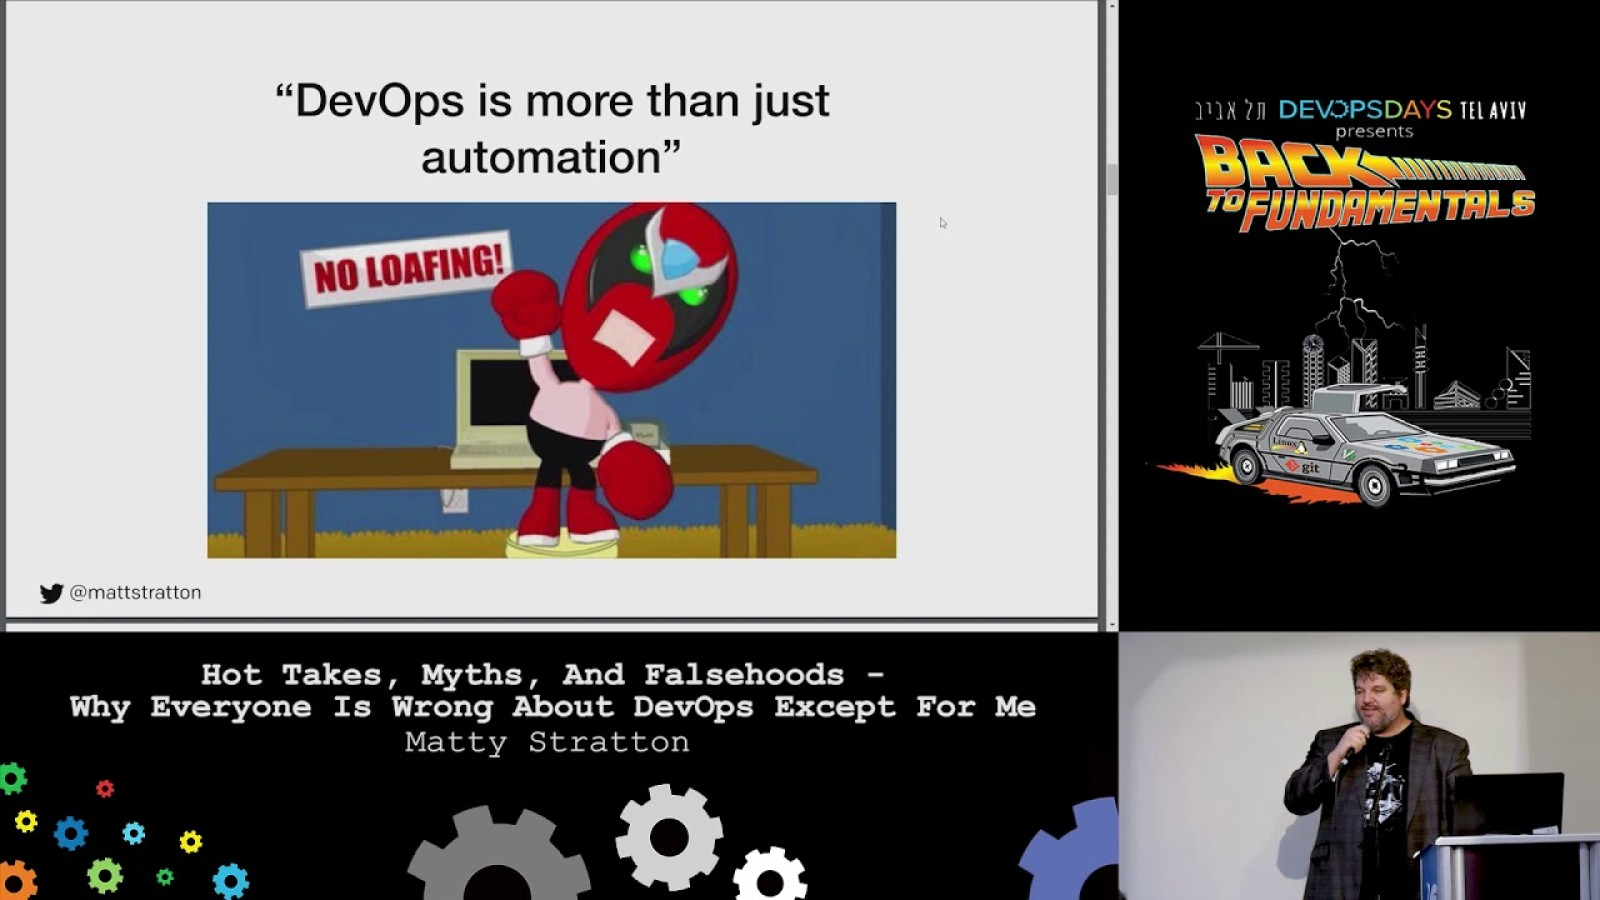 Hot Takes, Myths, And Fake News - Why Everyone Is Wrong About DevOps Except For Me